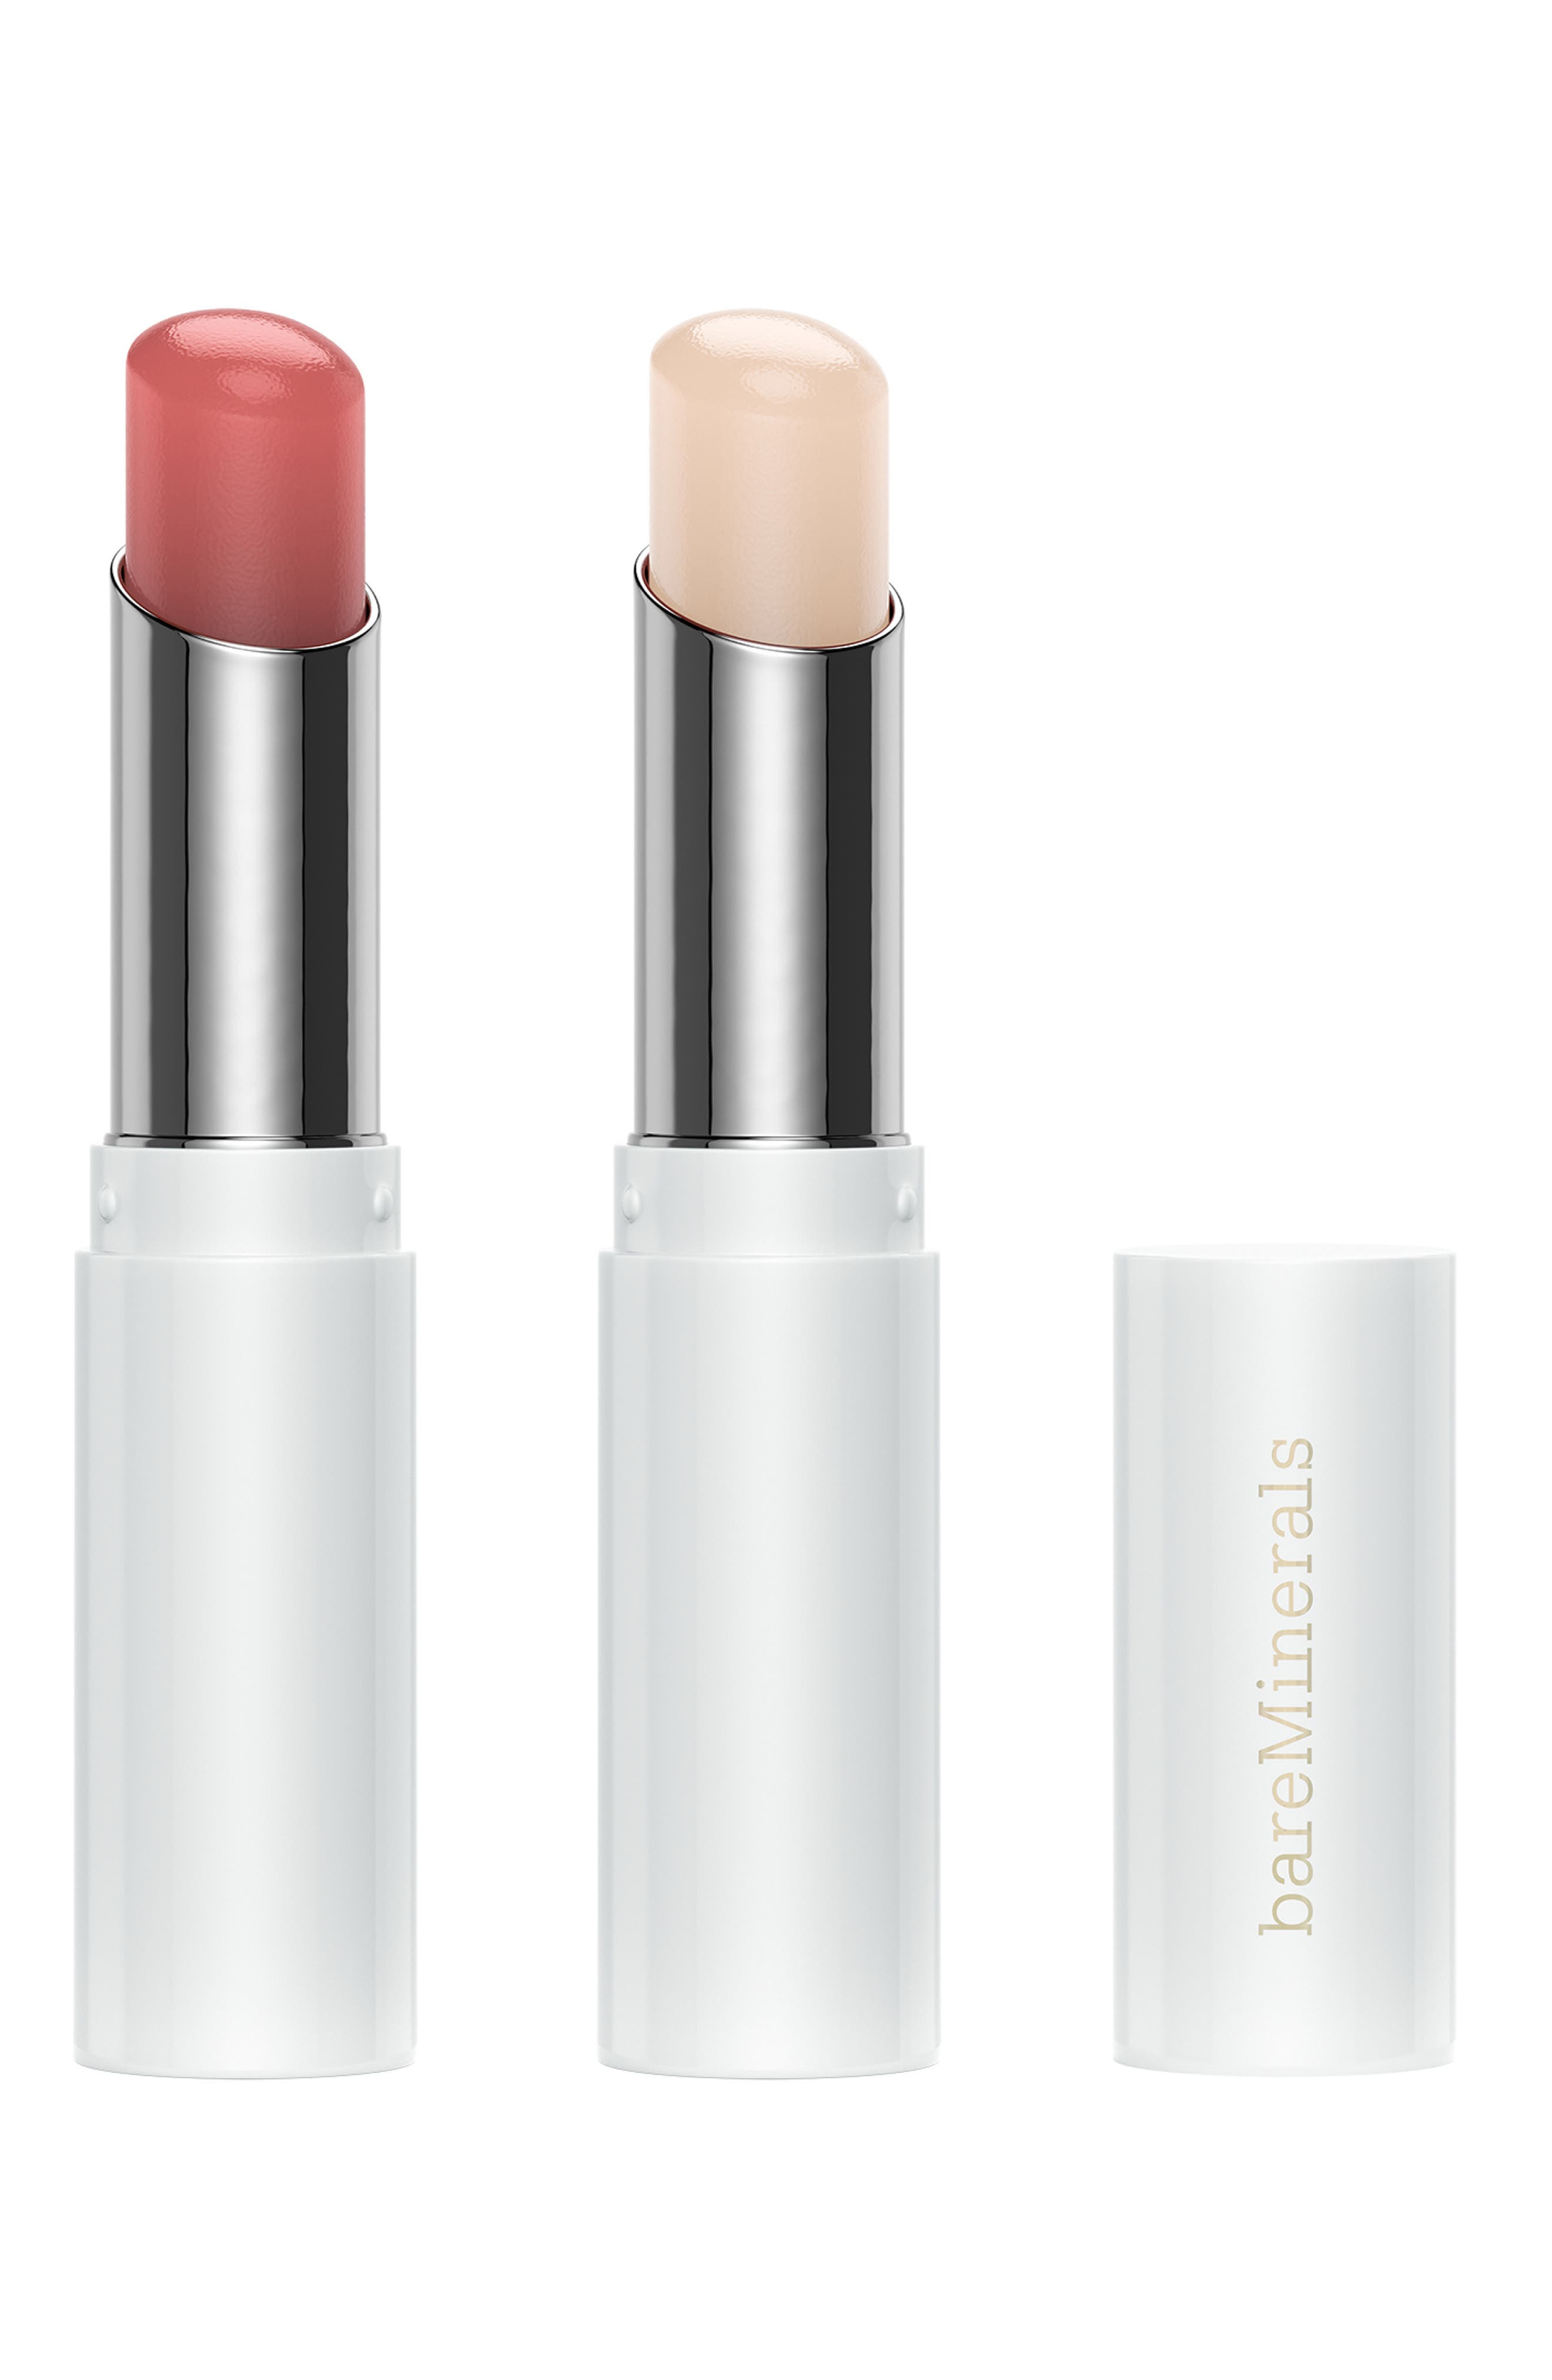 What it is: A limited-edition set featuring bareMinerals\\\' fan-favorite lip balm in clear and a new rosy nude. What it does: Kiss dry lips goodbye with this pair of refreshing minty lip balms, formulated with vitamin E to help moisturize and nourish. Set includes:- Lip Balm in Clear- Lip Balm in Rose NudeHow to use: Apply directly to lips. Style Name: Bareminerals Lip Balm Duo (USD $36 Value). Style Number: 6094685. Available in stores.